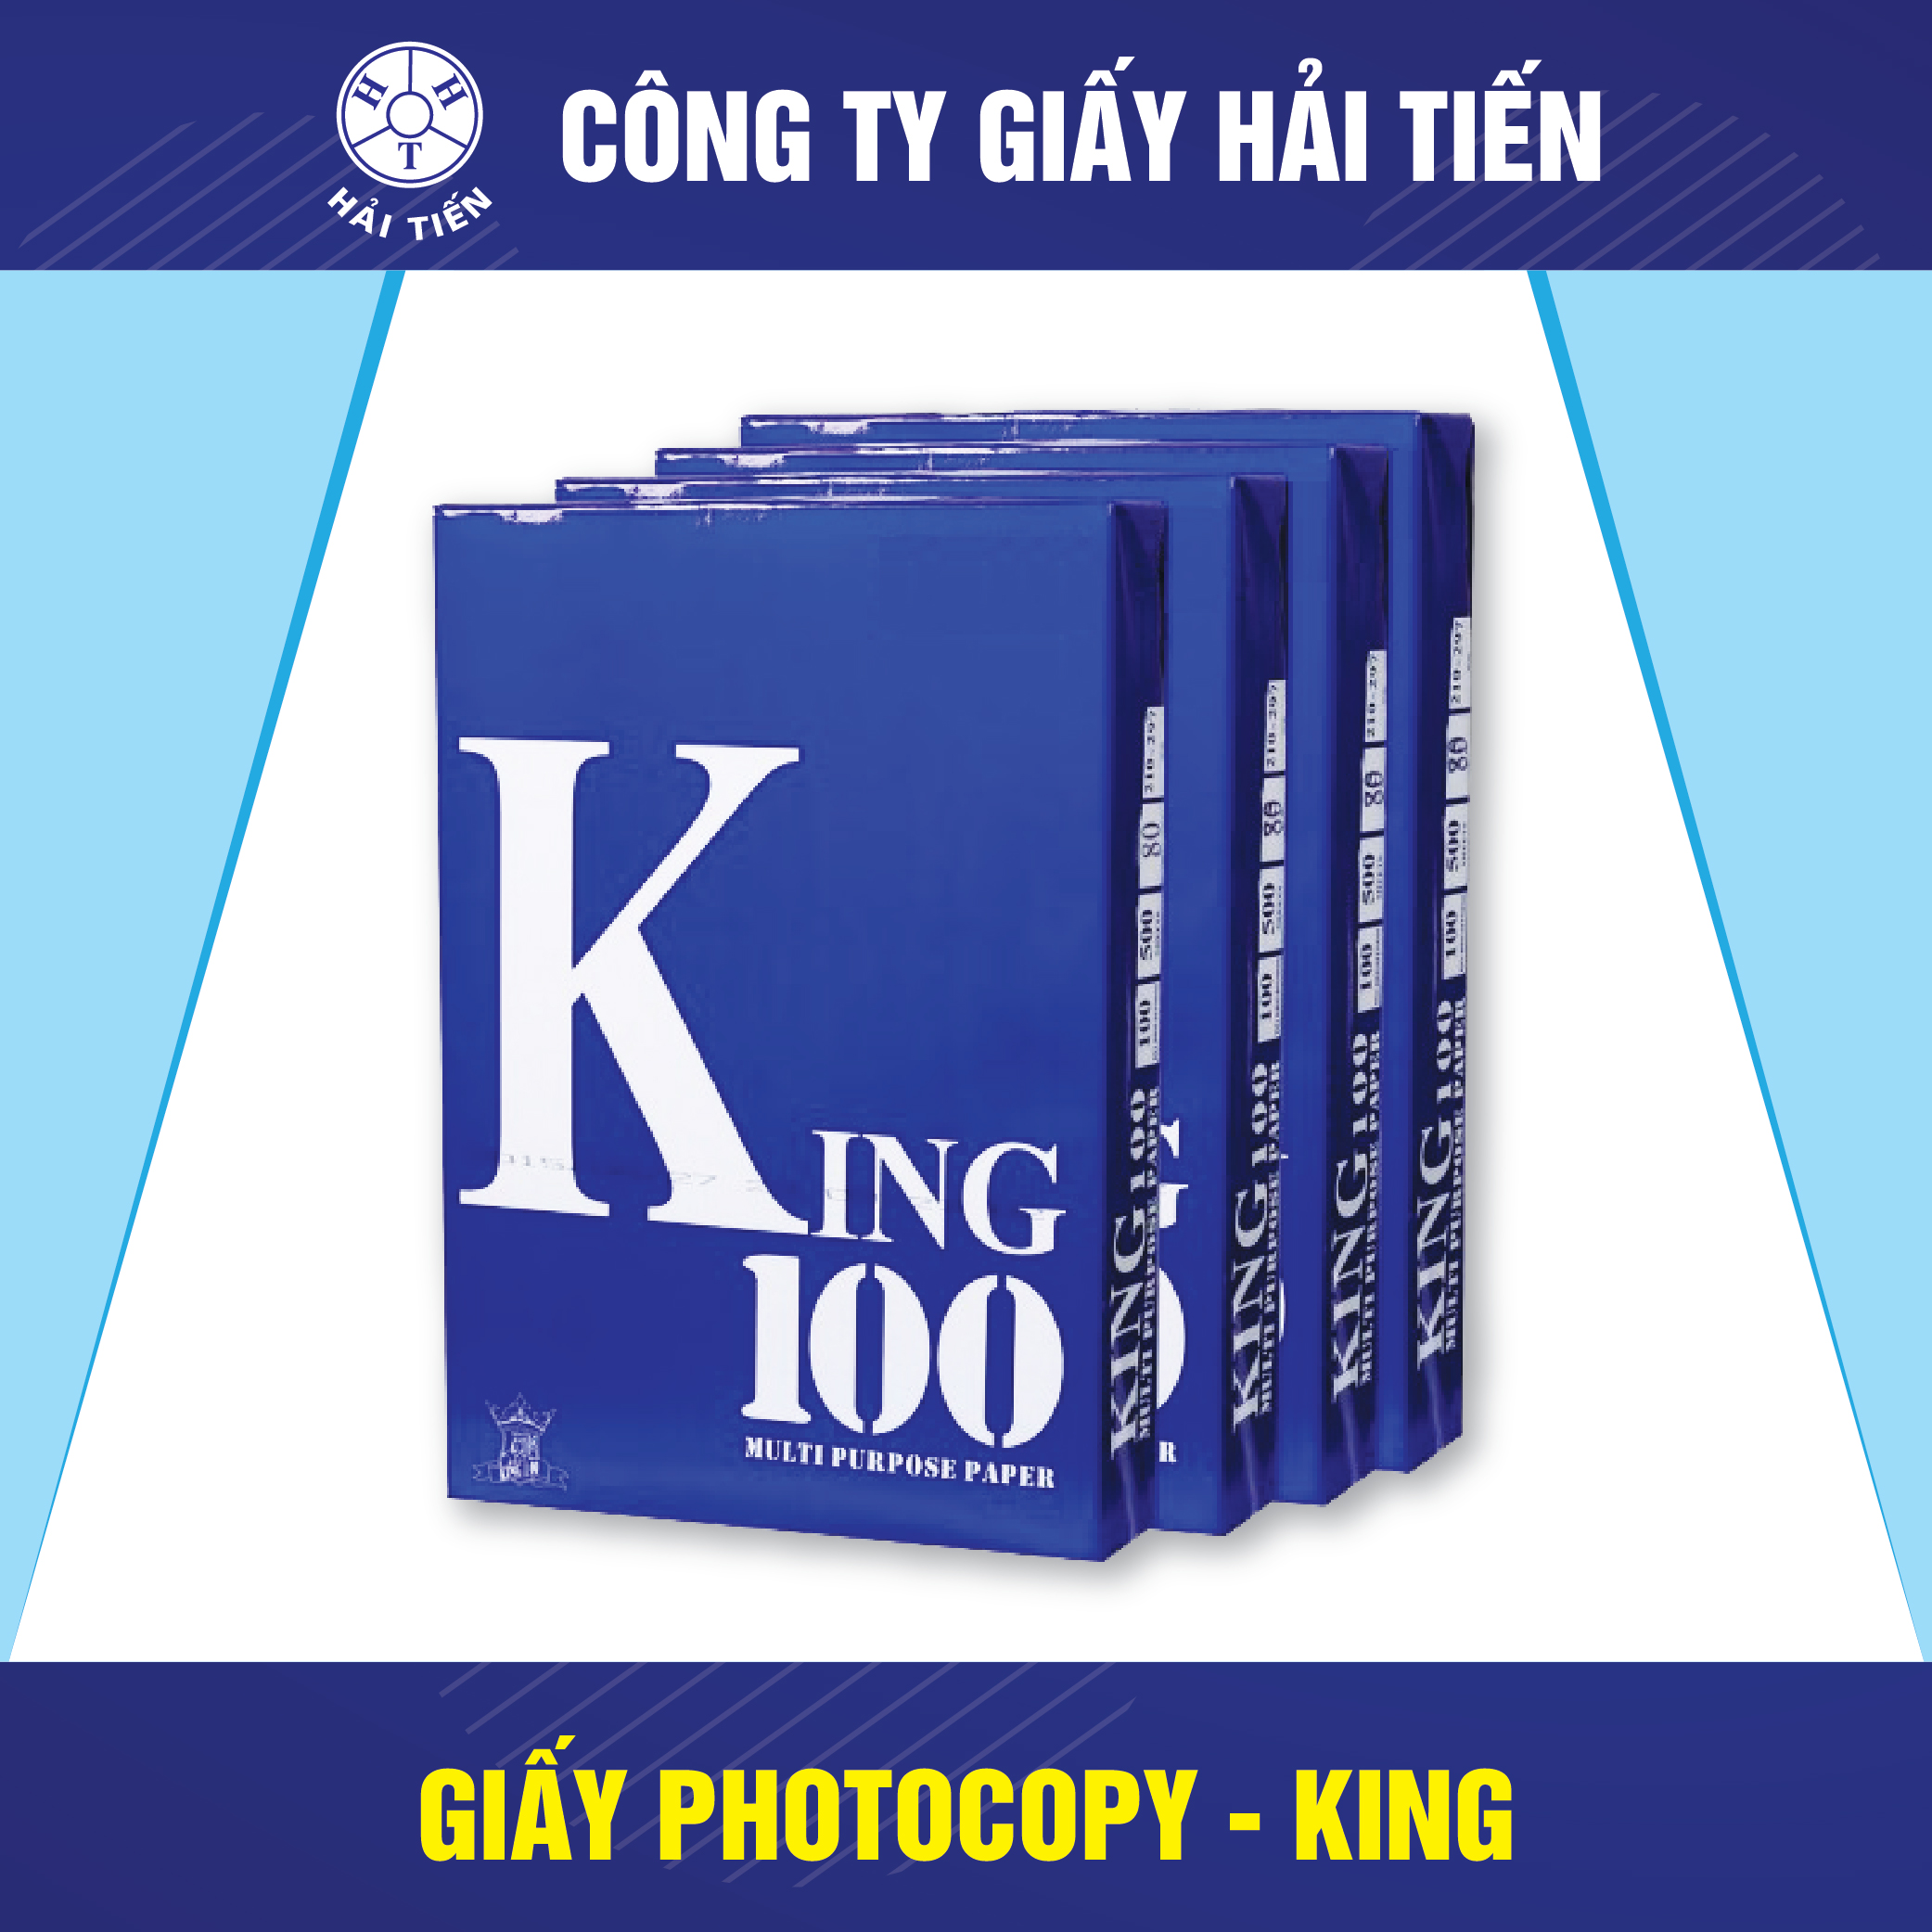 Giấy Photocopy King 100